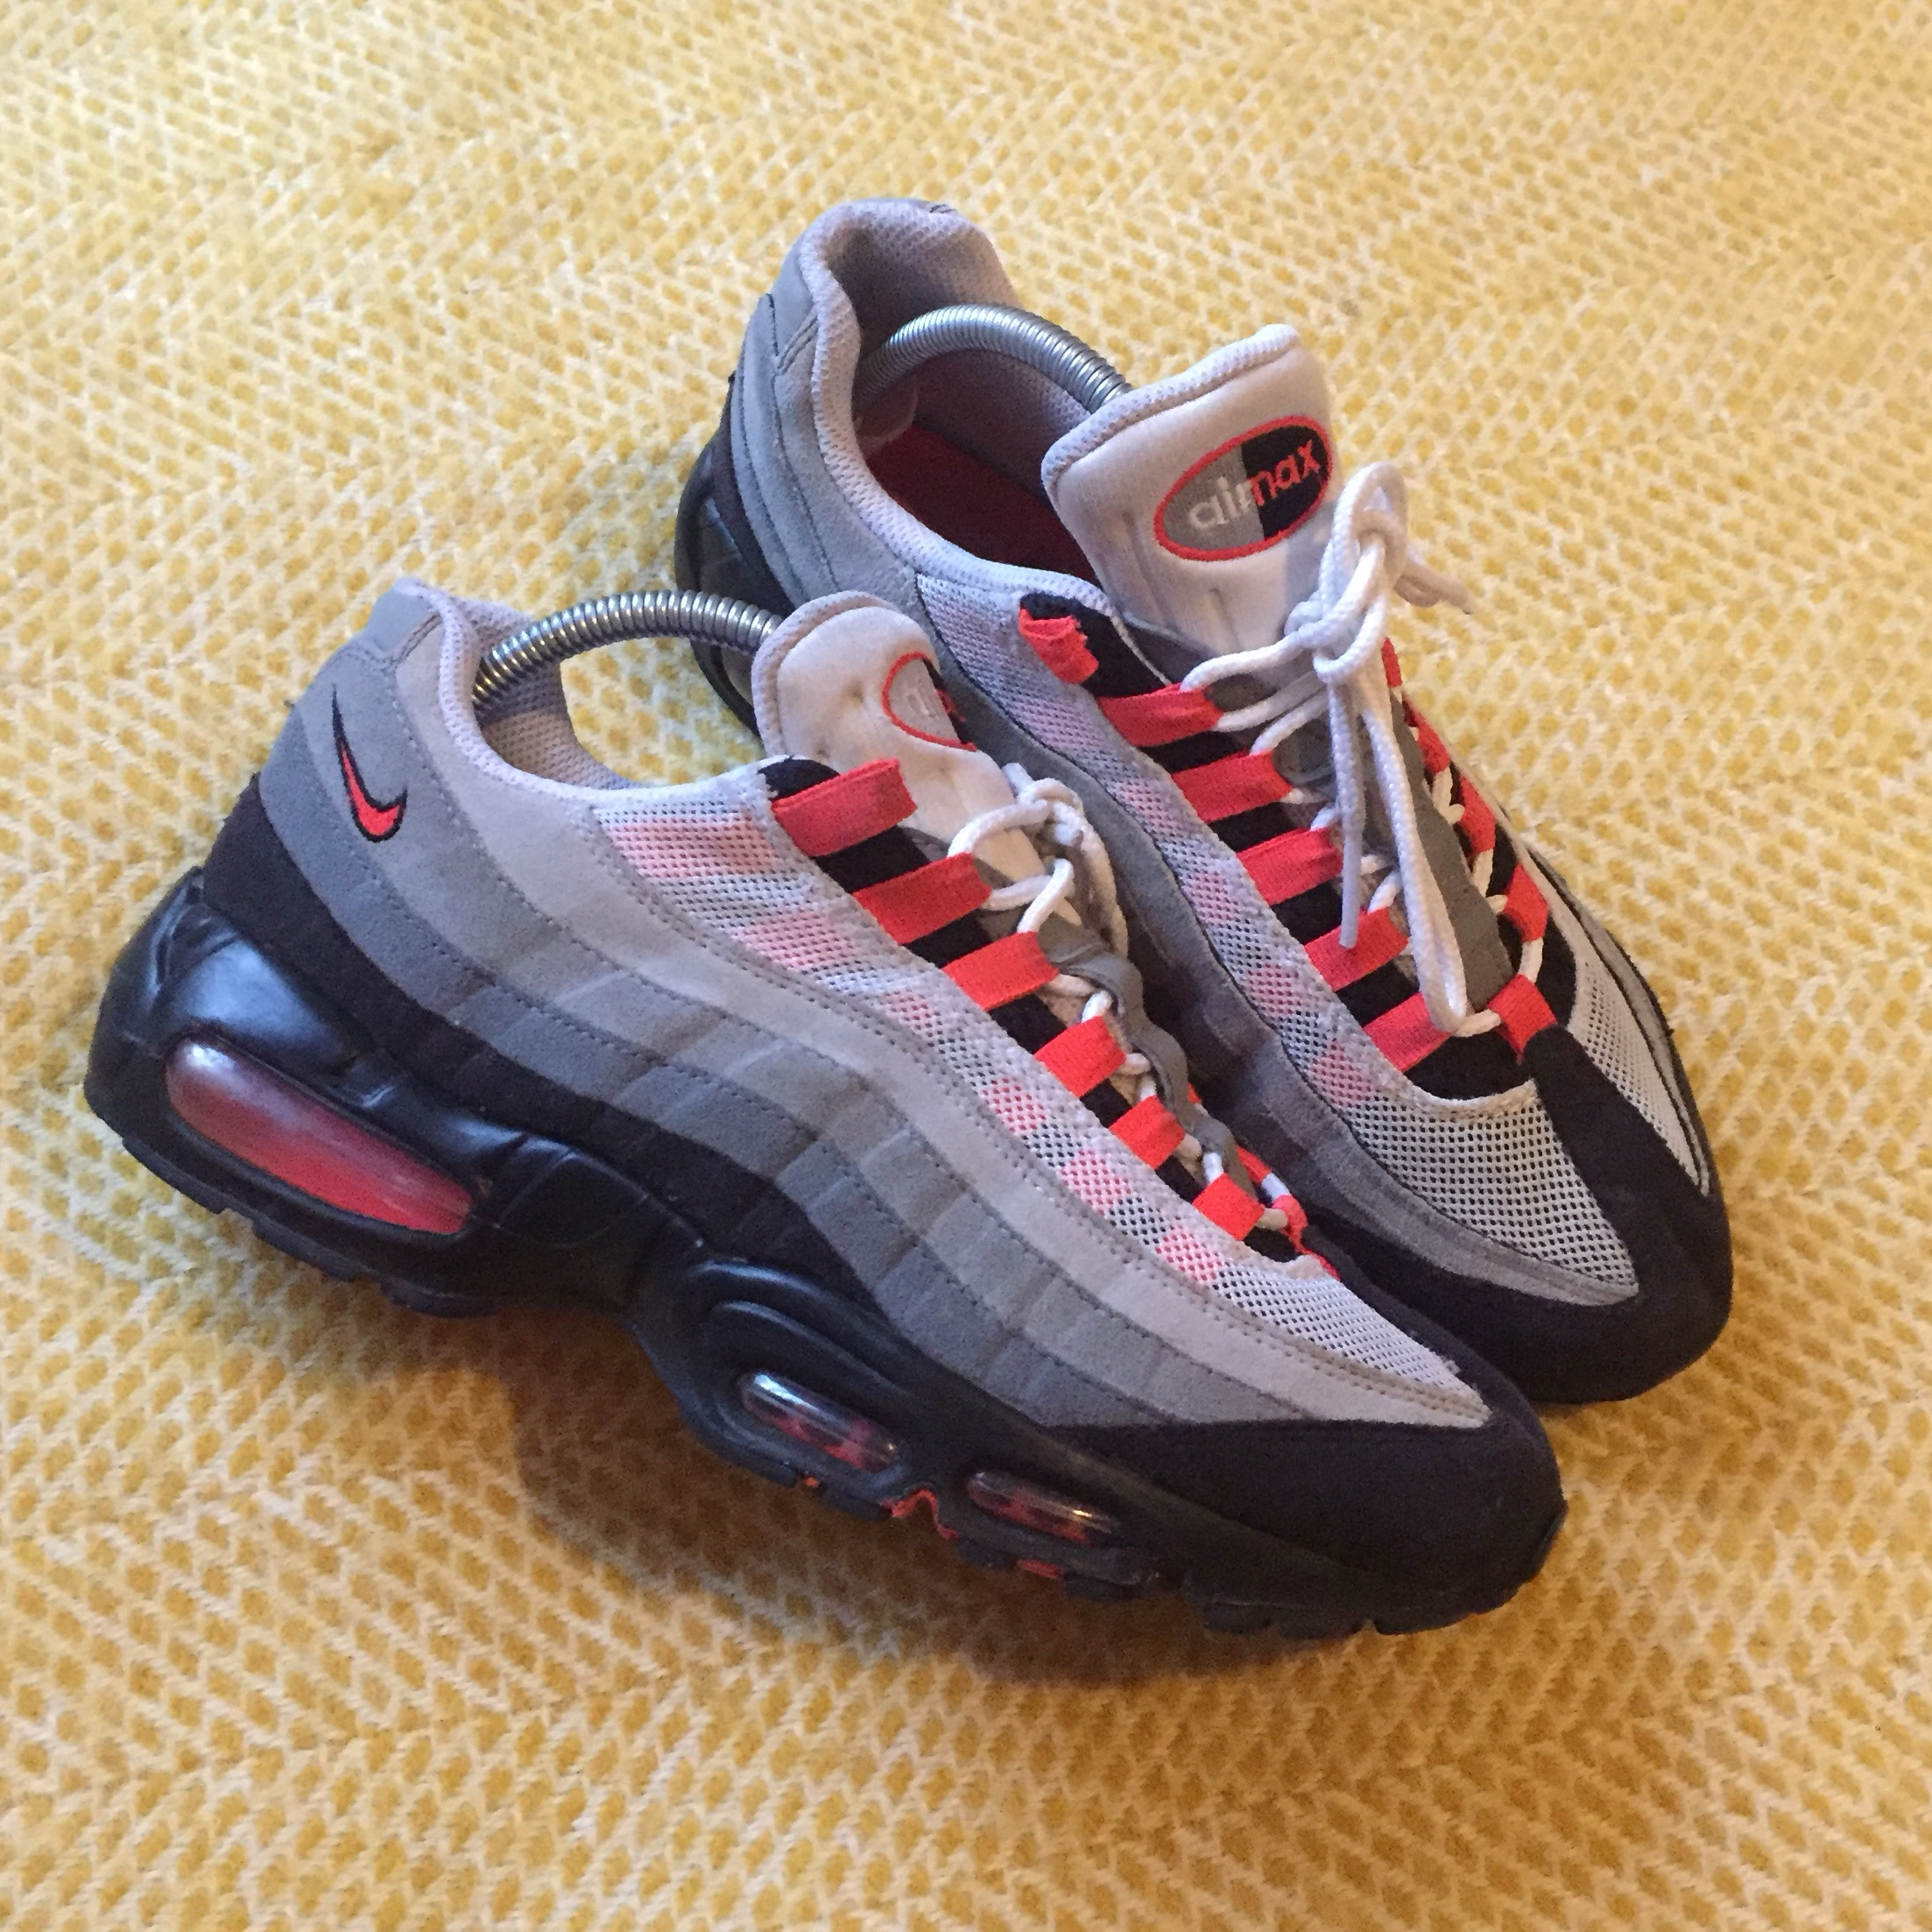 new arrival 4f887 cac03 Nike Air Max 95 solar red neon orange / grey marl -... - Depop